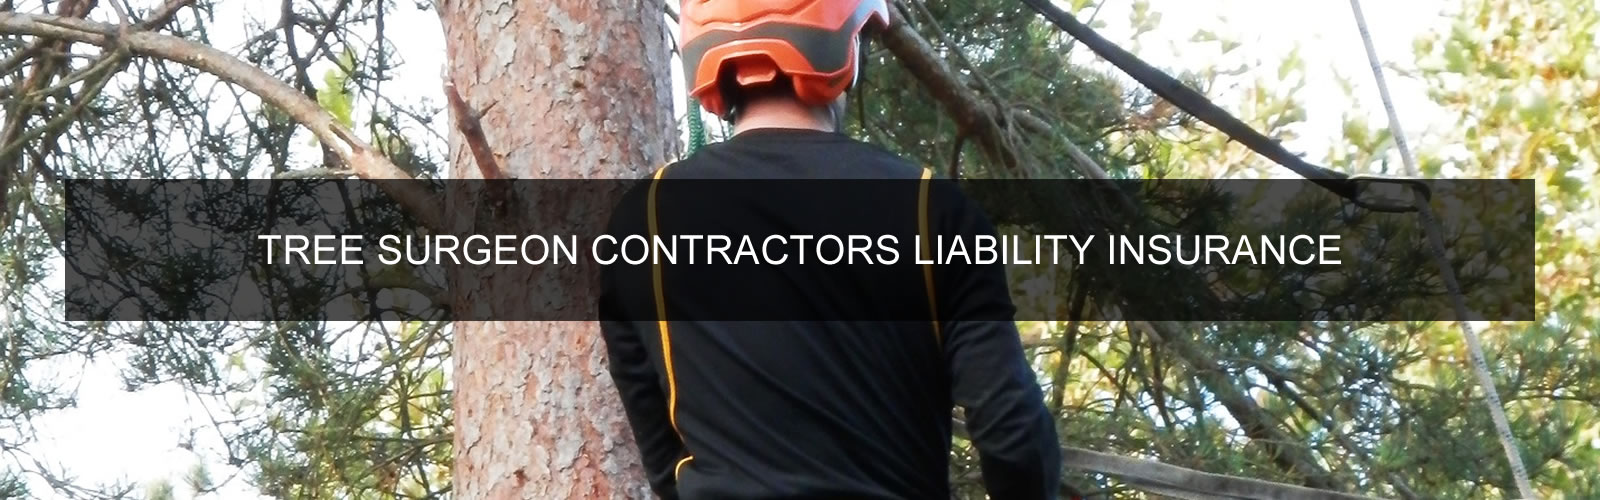 Tree Surgeon Contractors Liability Insurance